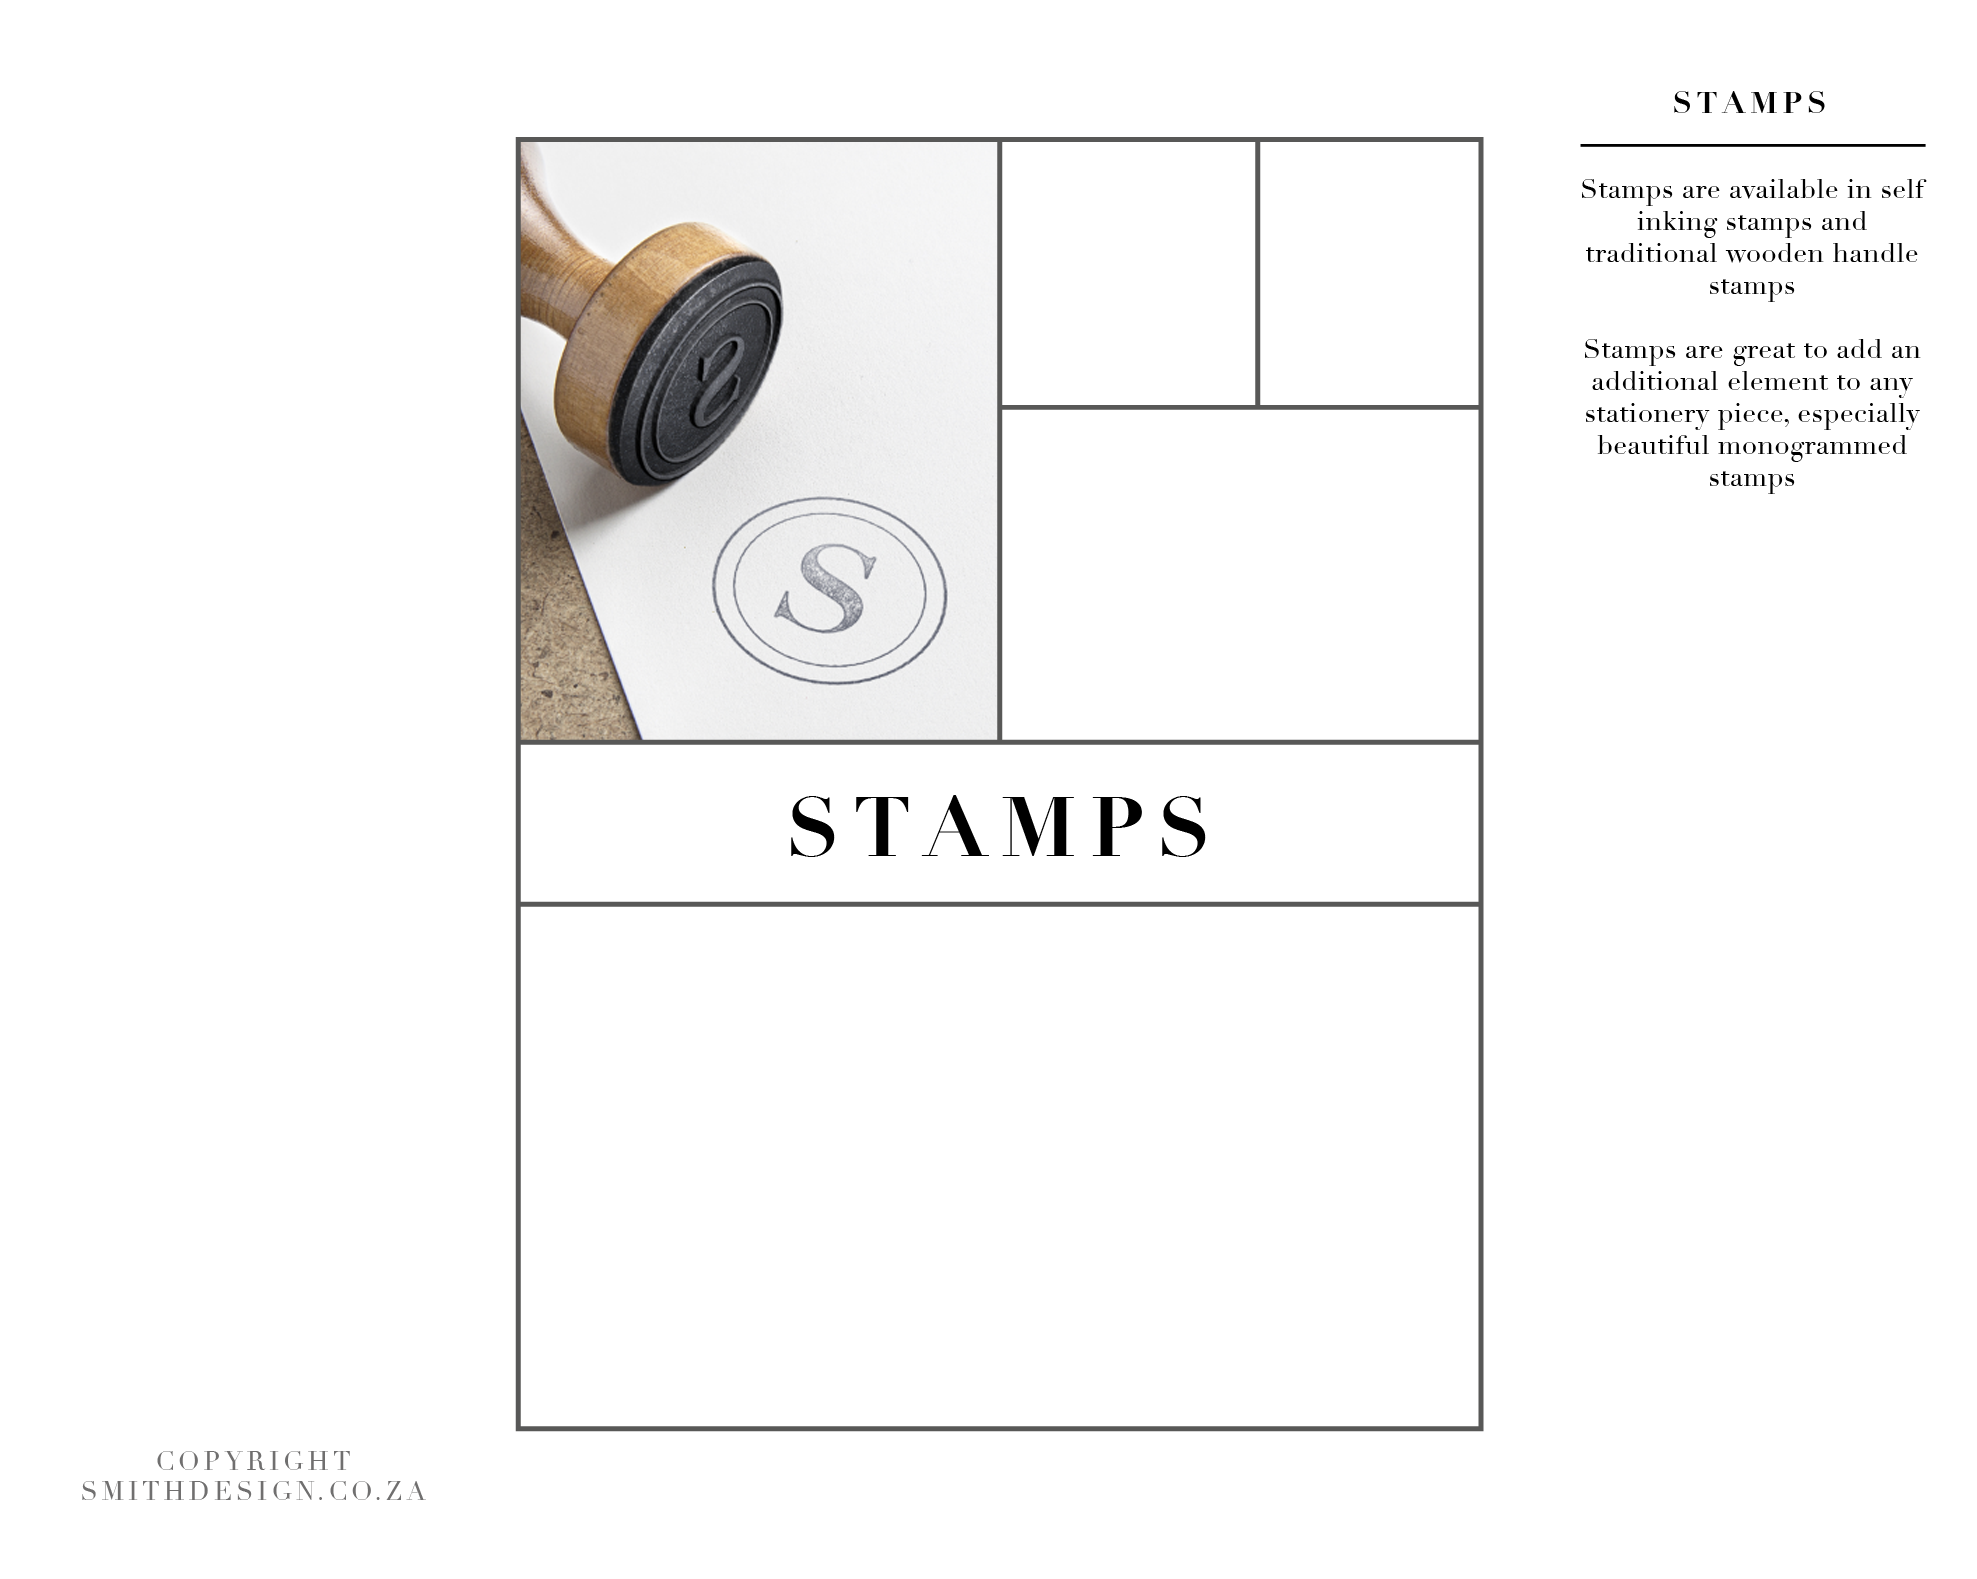 Smith Stamps